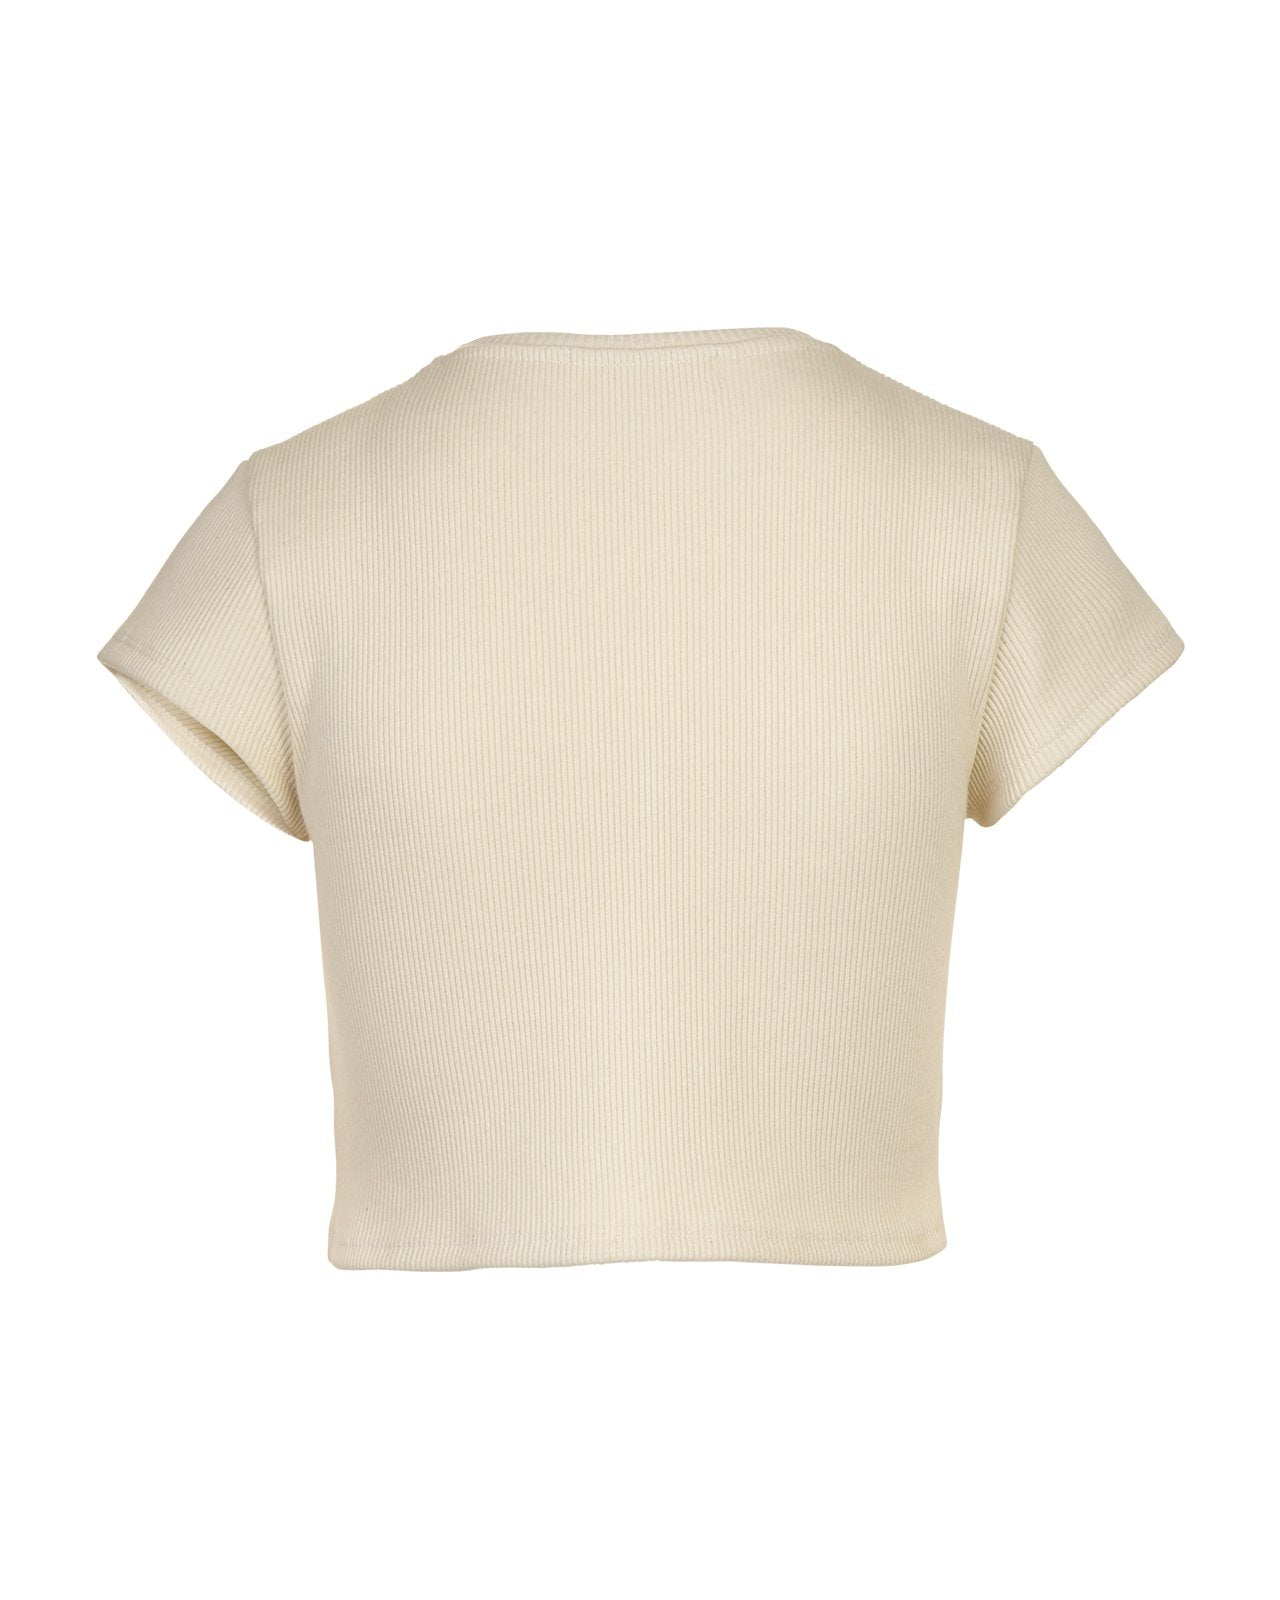 Ribbed Crop -  Beige